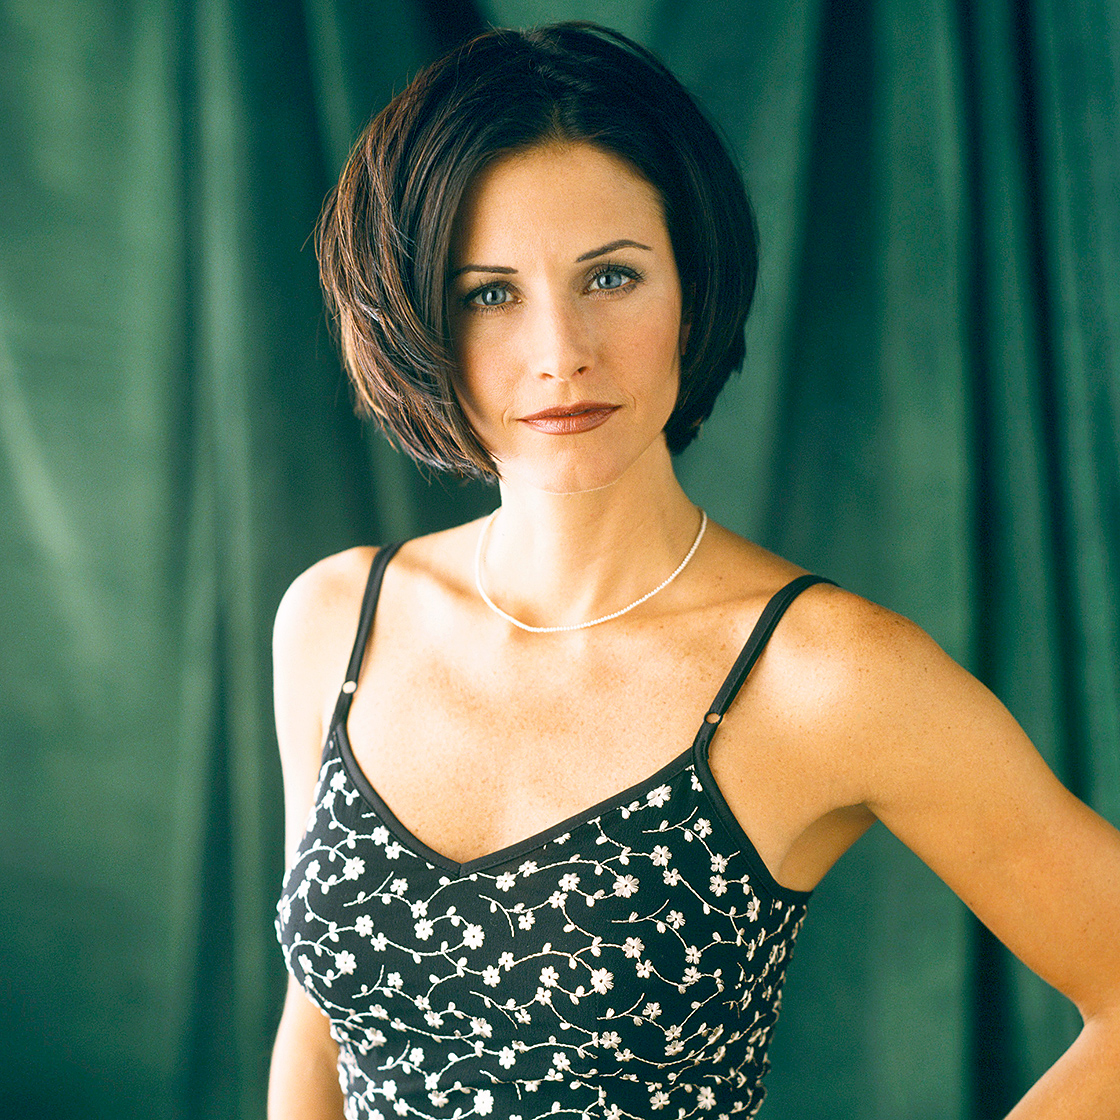 In 2005, Cox — starring as Ross' sister, Monica Geller — and her female costars became the highest-paid TV actresses of all time, earning $1 million per episode for the ninth and tenth seasons of Friends .